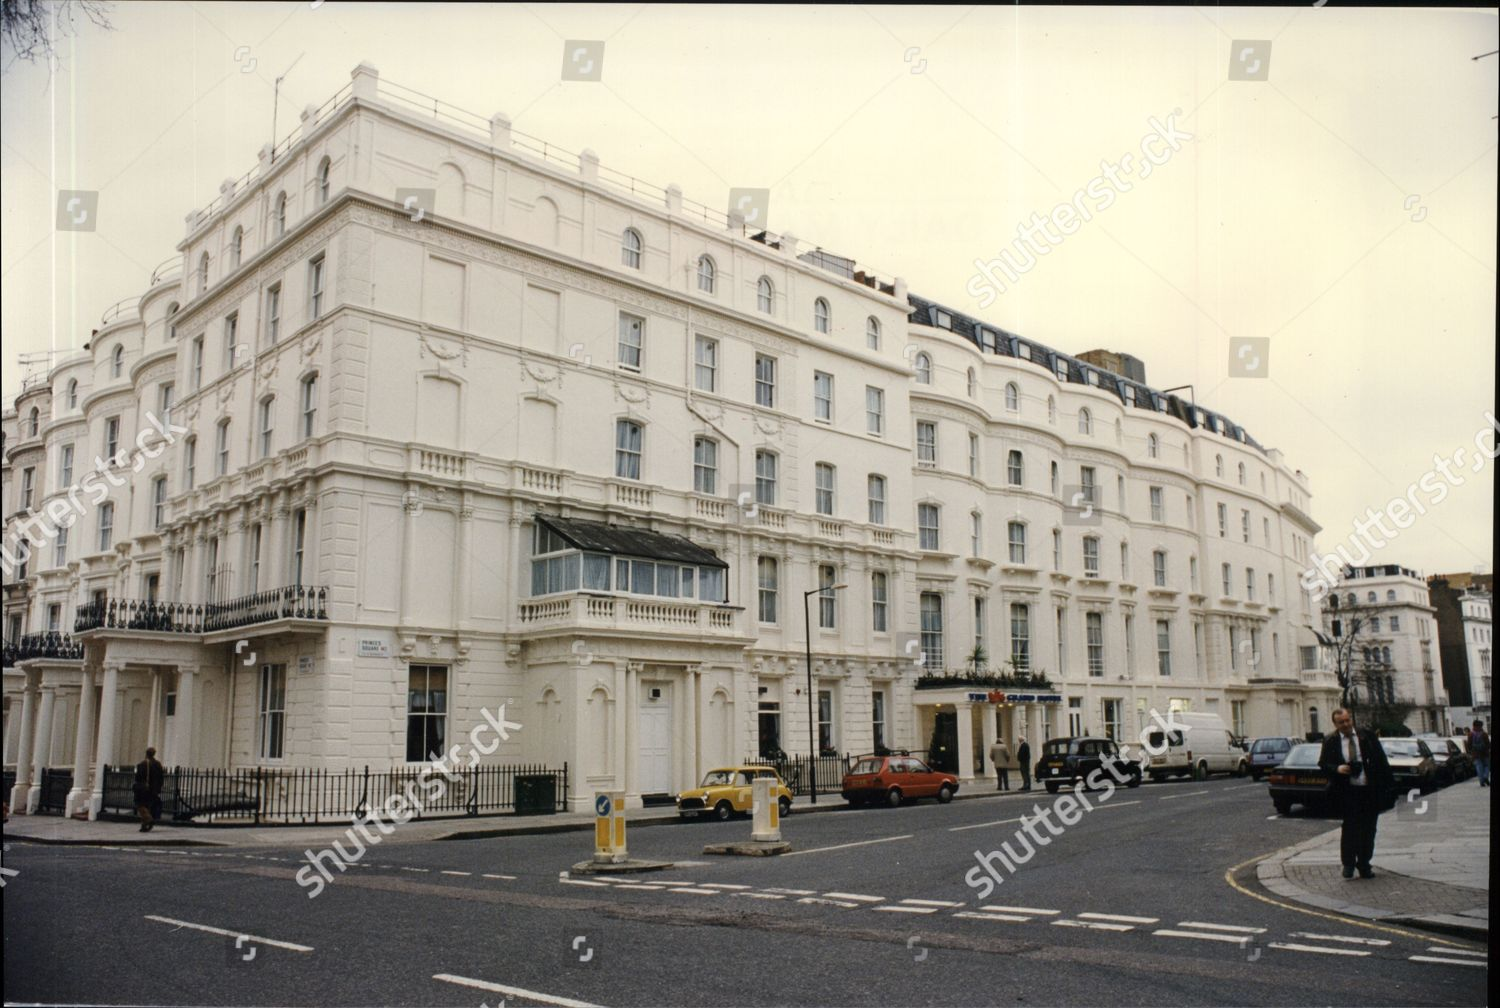 Exterior Butlins Grand Hotel Bayswater London Editorial Stock Photo Stock Image Shutterstock